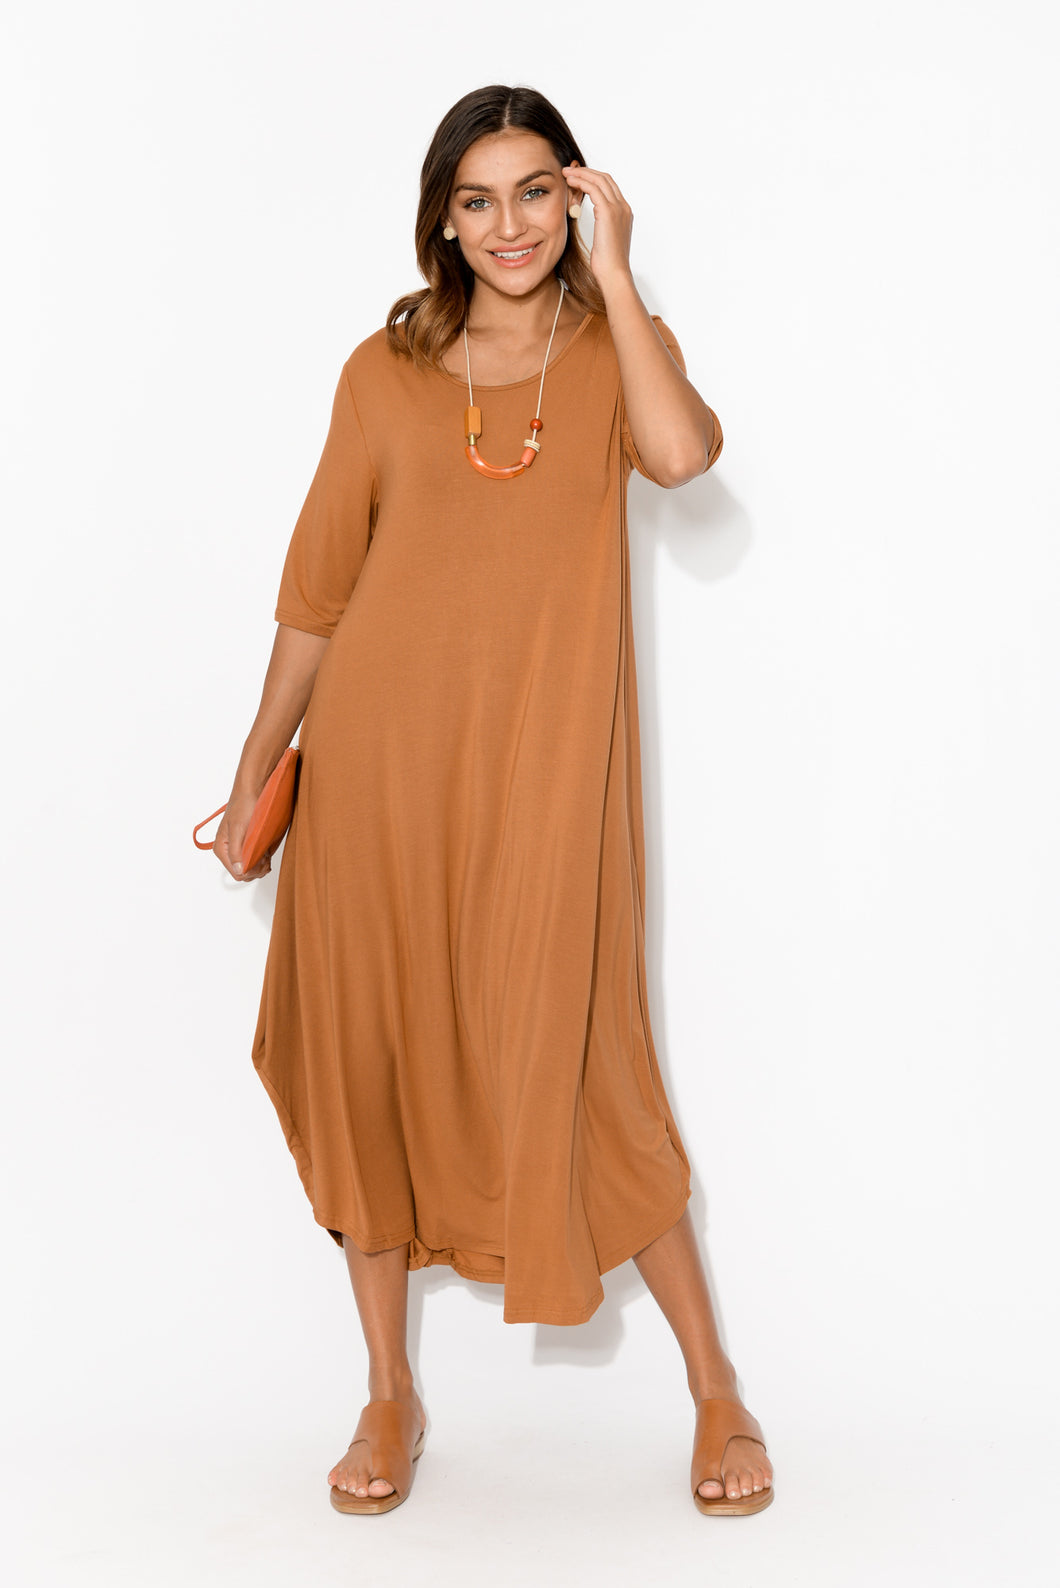 Trinity Bronze Bamboo Drape Dress